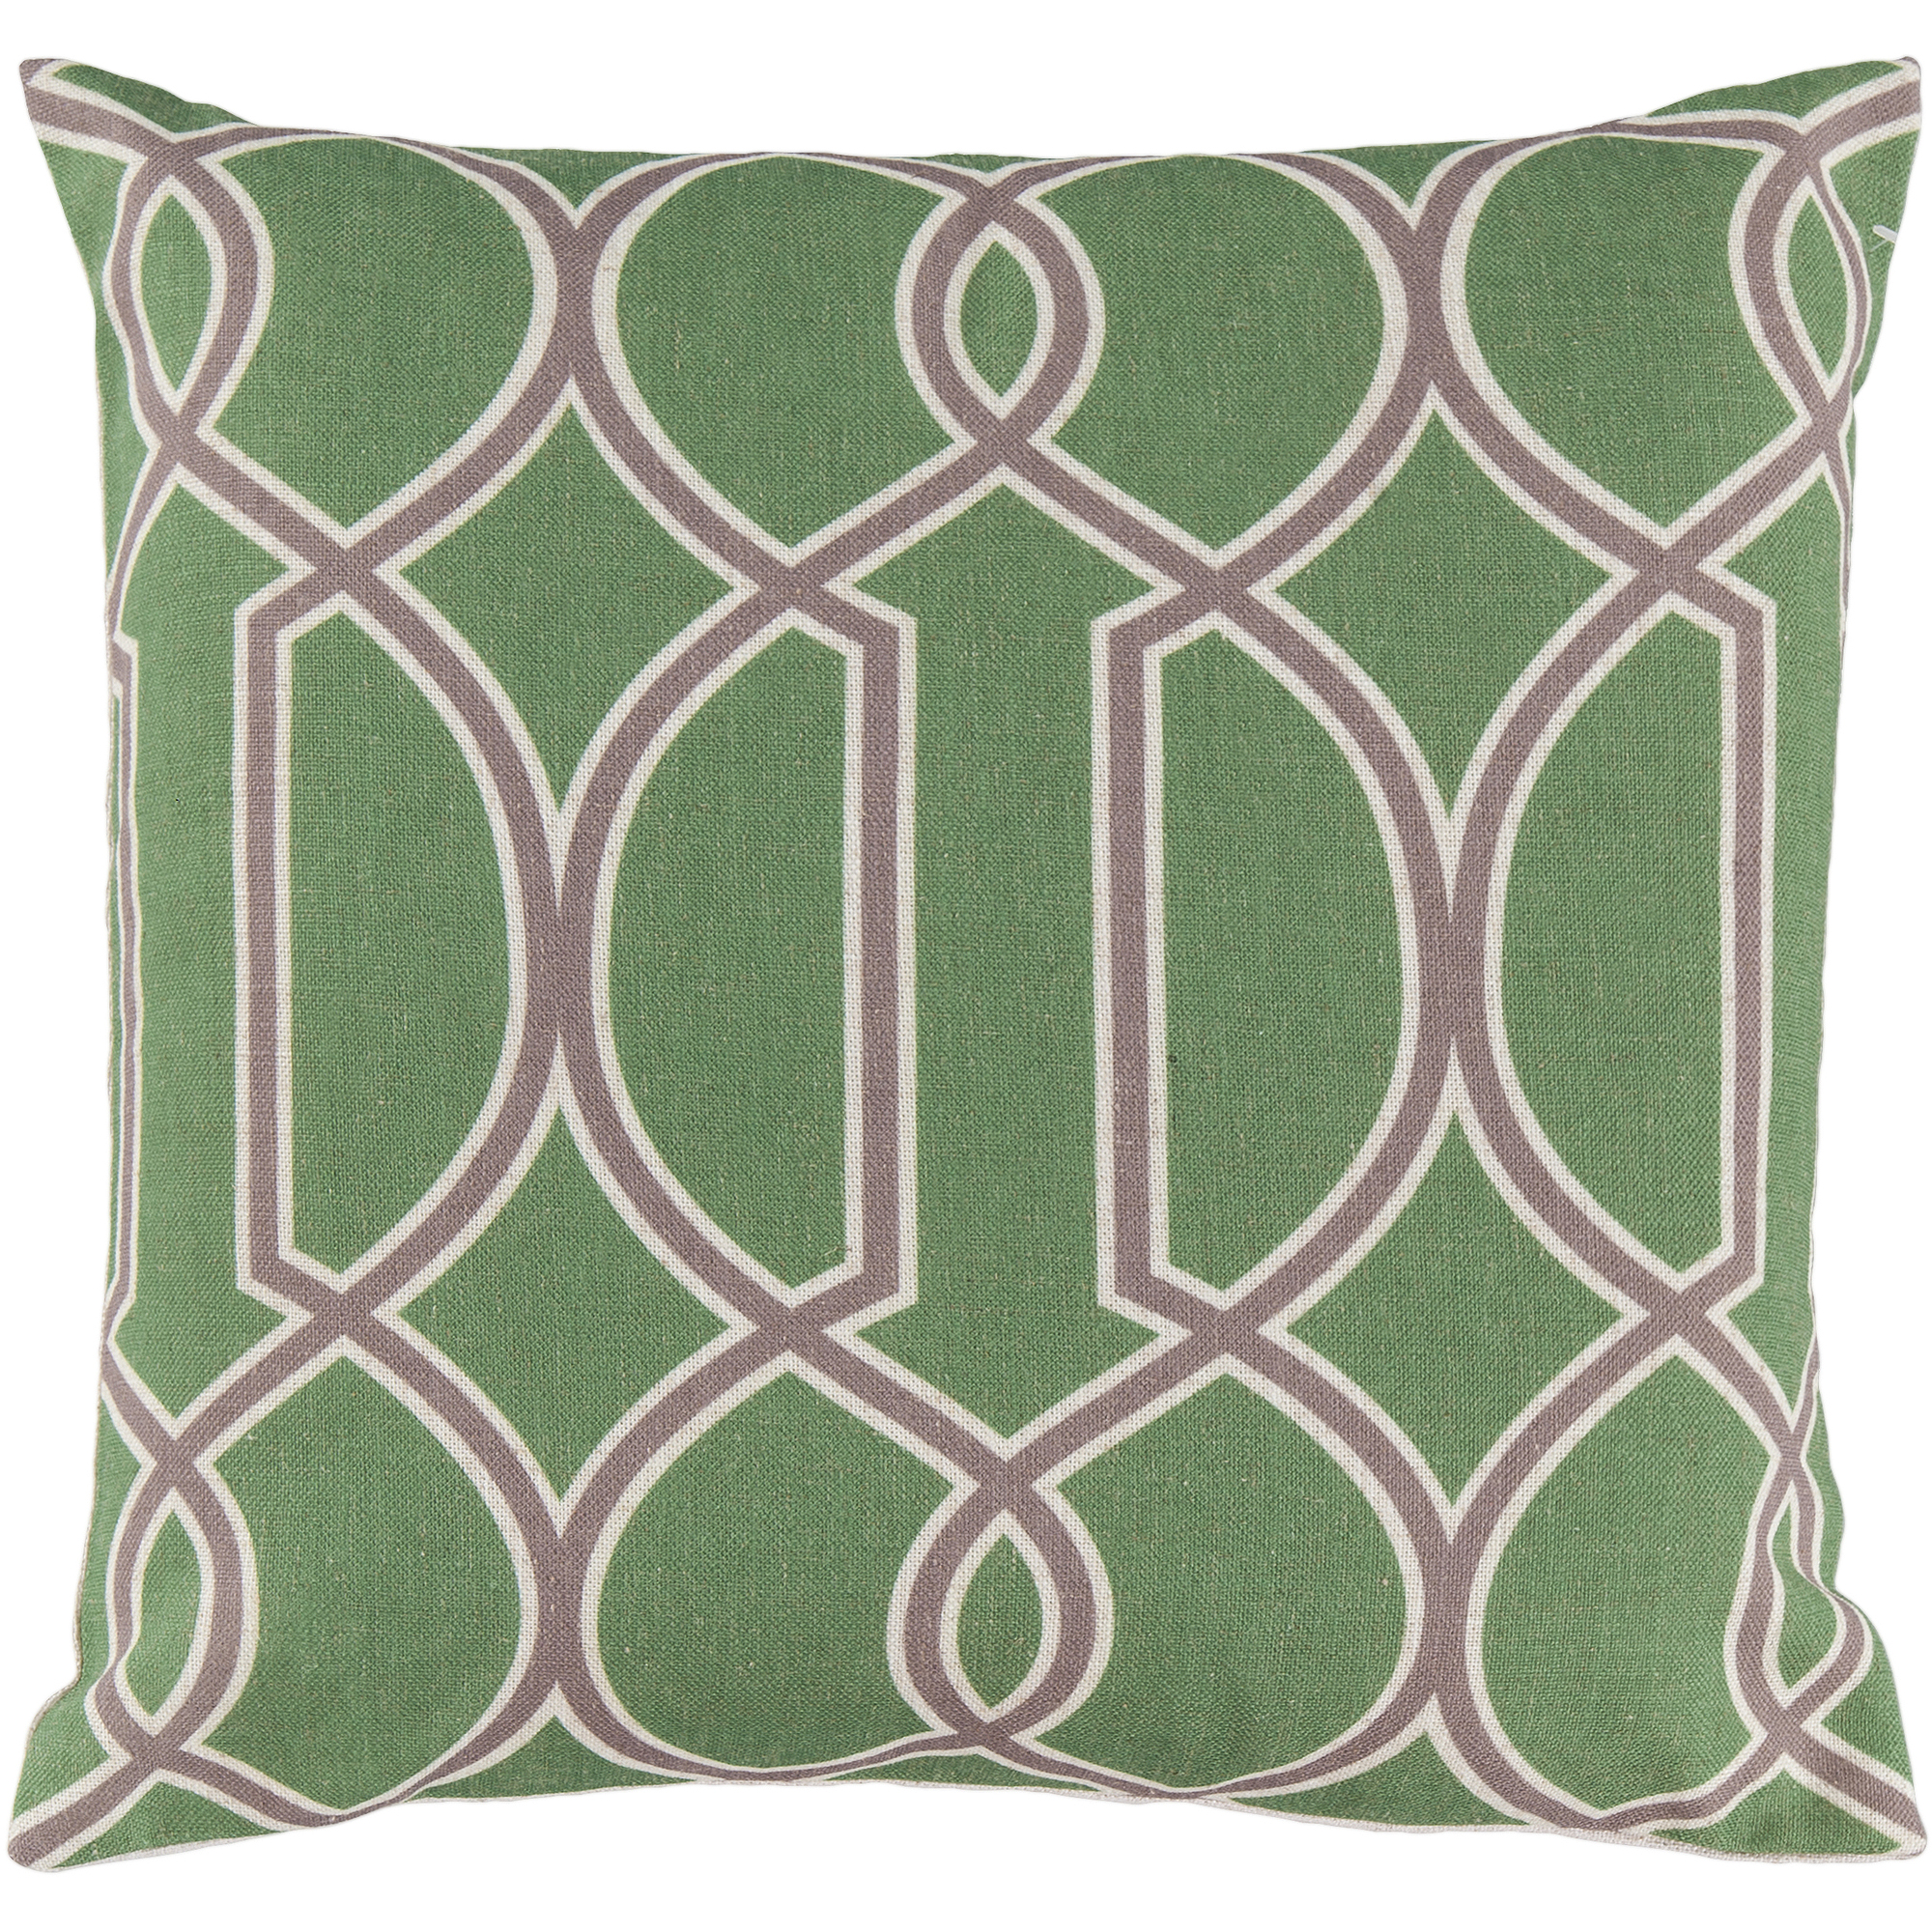 Art of Knot Bentley Hand Crafted Geometric Trellis Decorative Pillow with Poly Filler, Lime